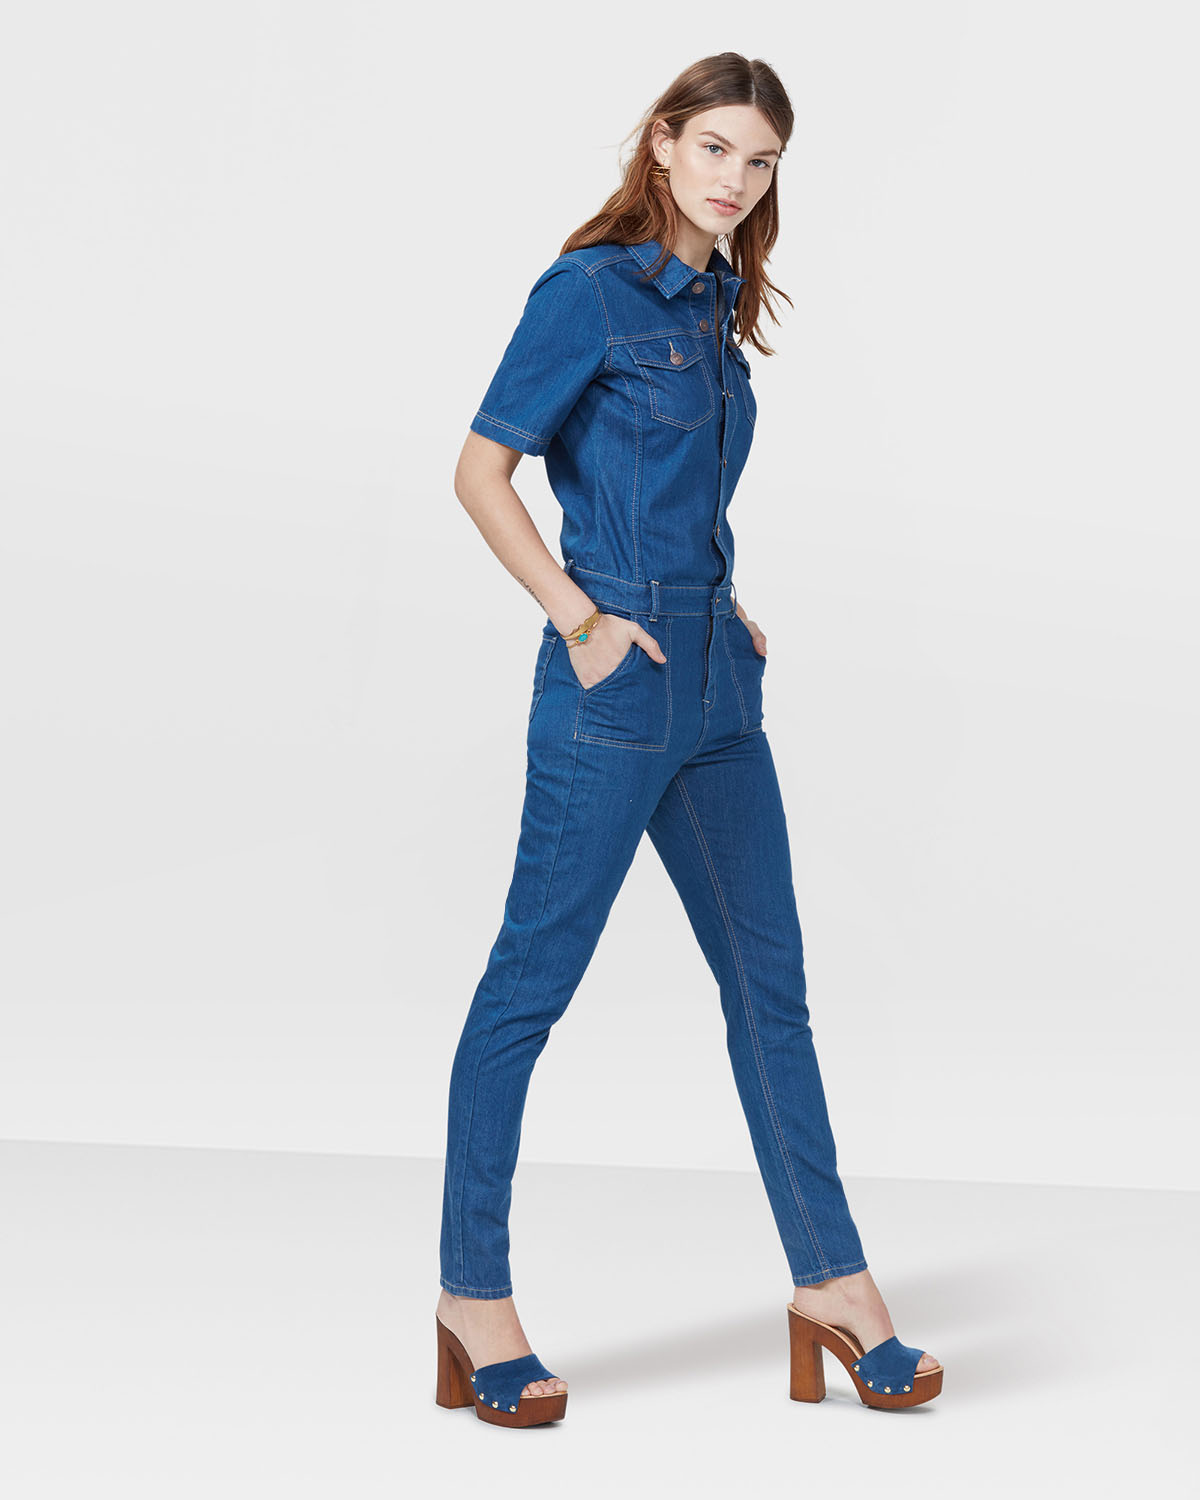 DAMEN JEANS-OVERALL   79165822 - WE Fashion 1a01089484